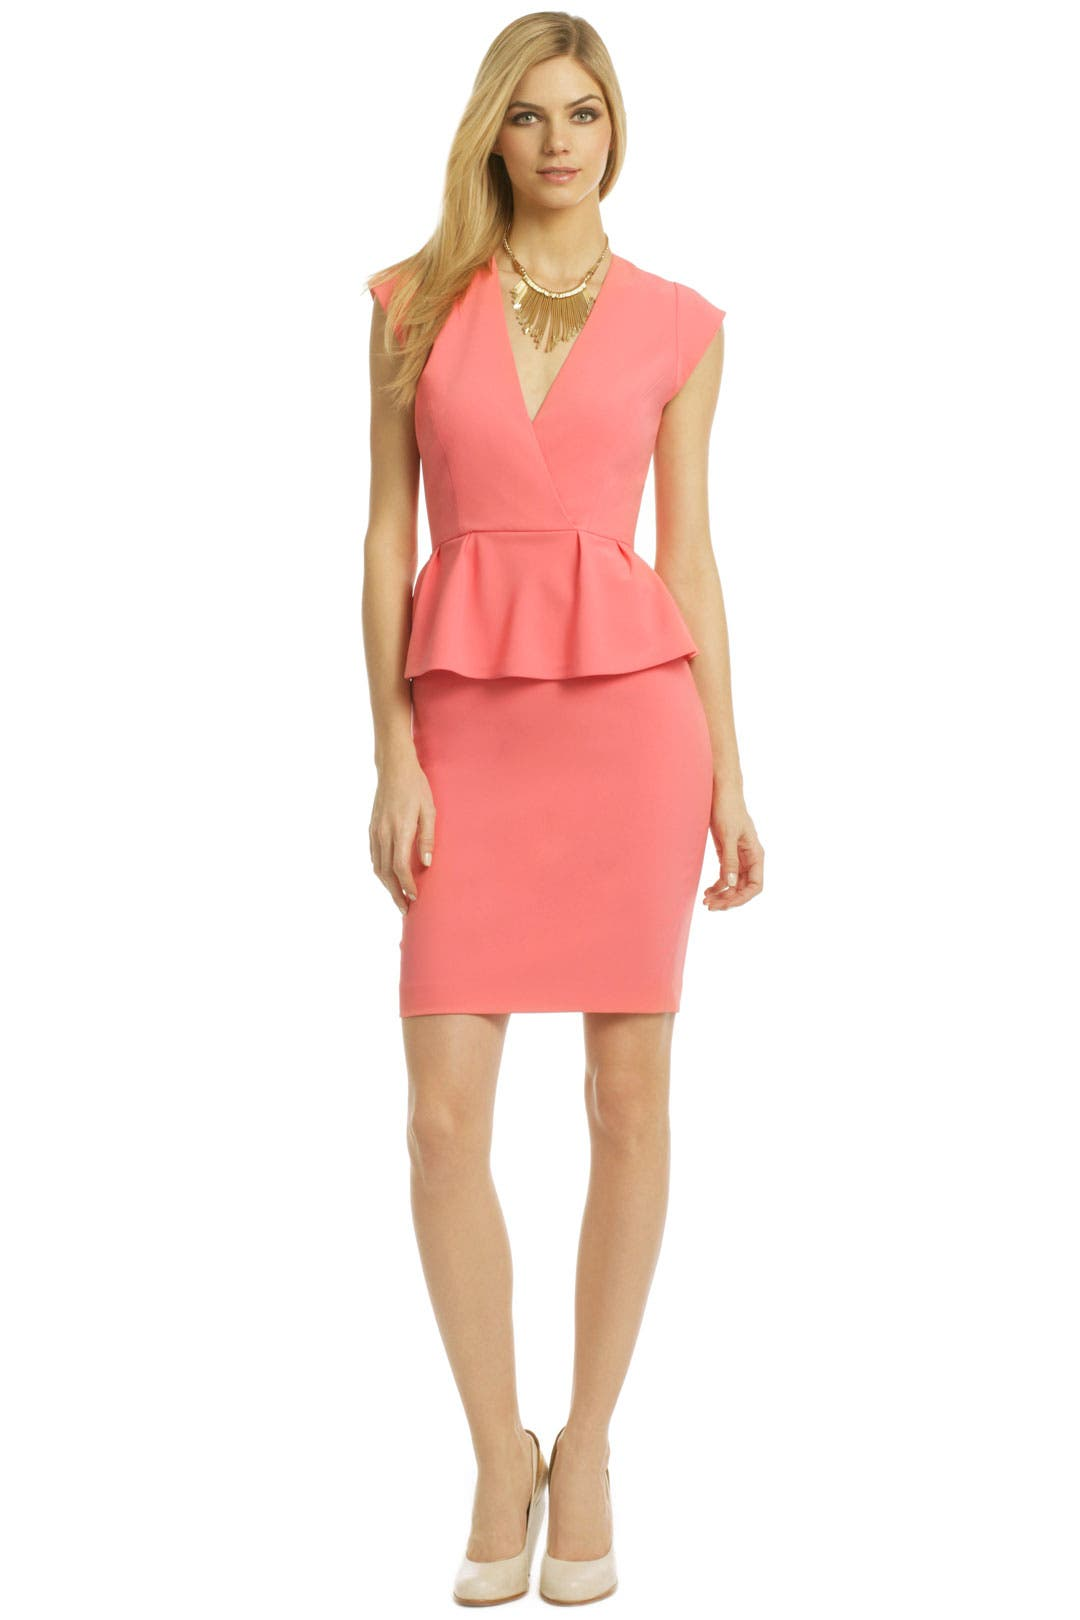 Coral Beach Peplum Dress by ERIN by erin fetherston